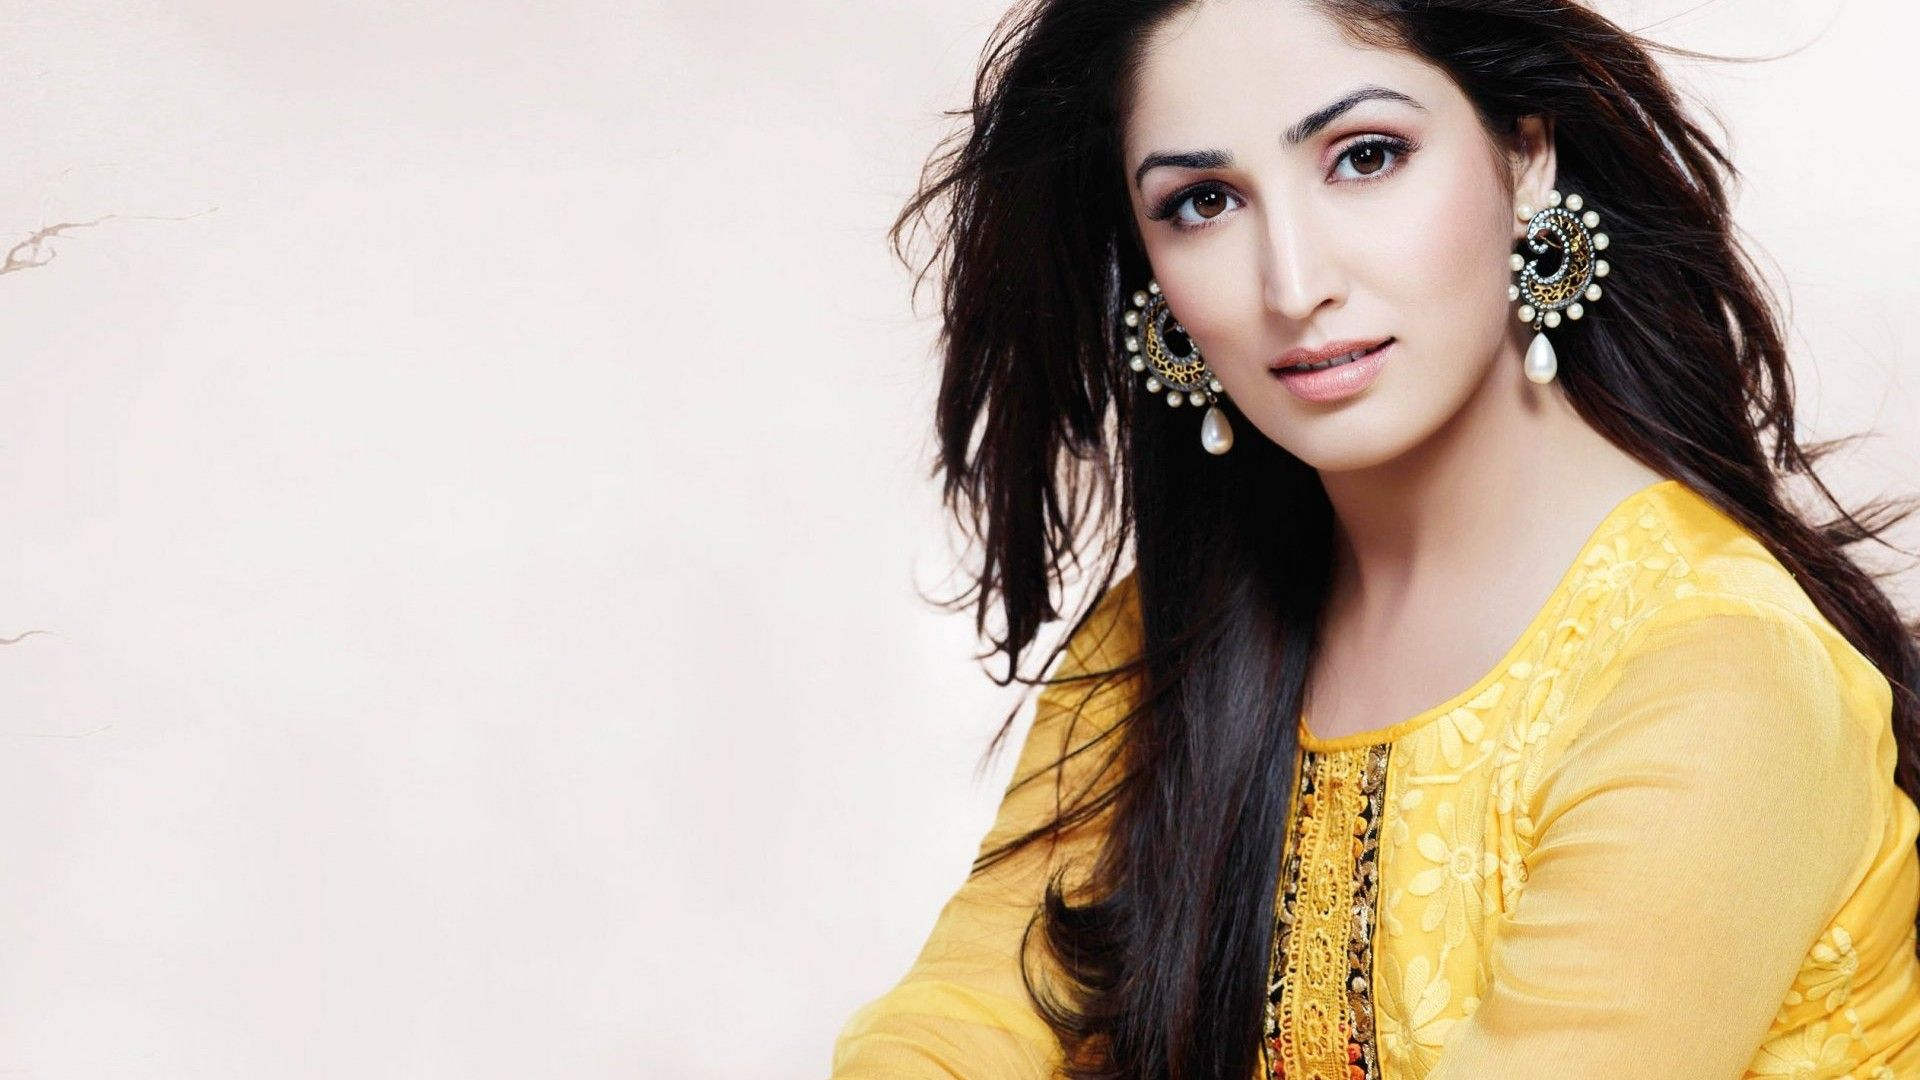 Wonderful Bollywood Actress Hd Wallpapers 1366x768 On Windows Wallpaper Themes With Bollywood Actress Wallpaper Bollywood Actress Beautiful Bollywood Actress